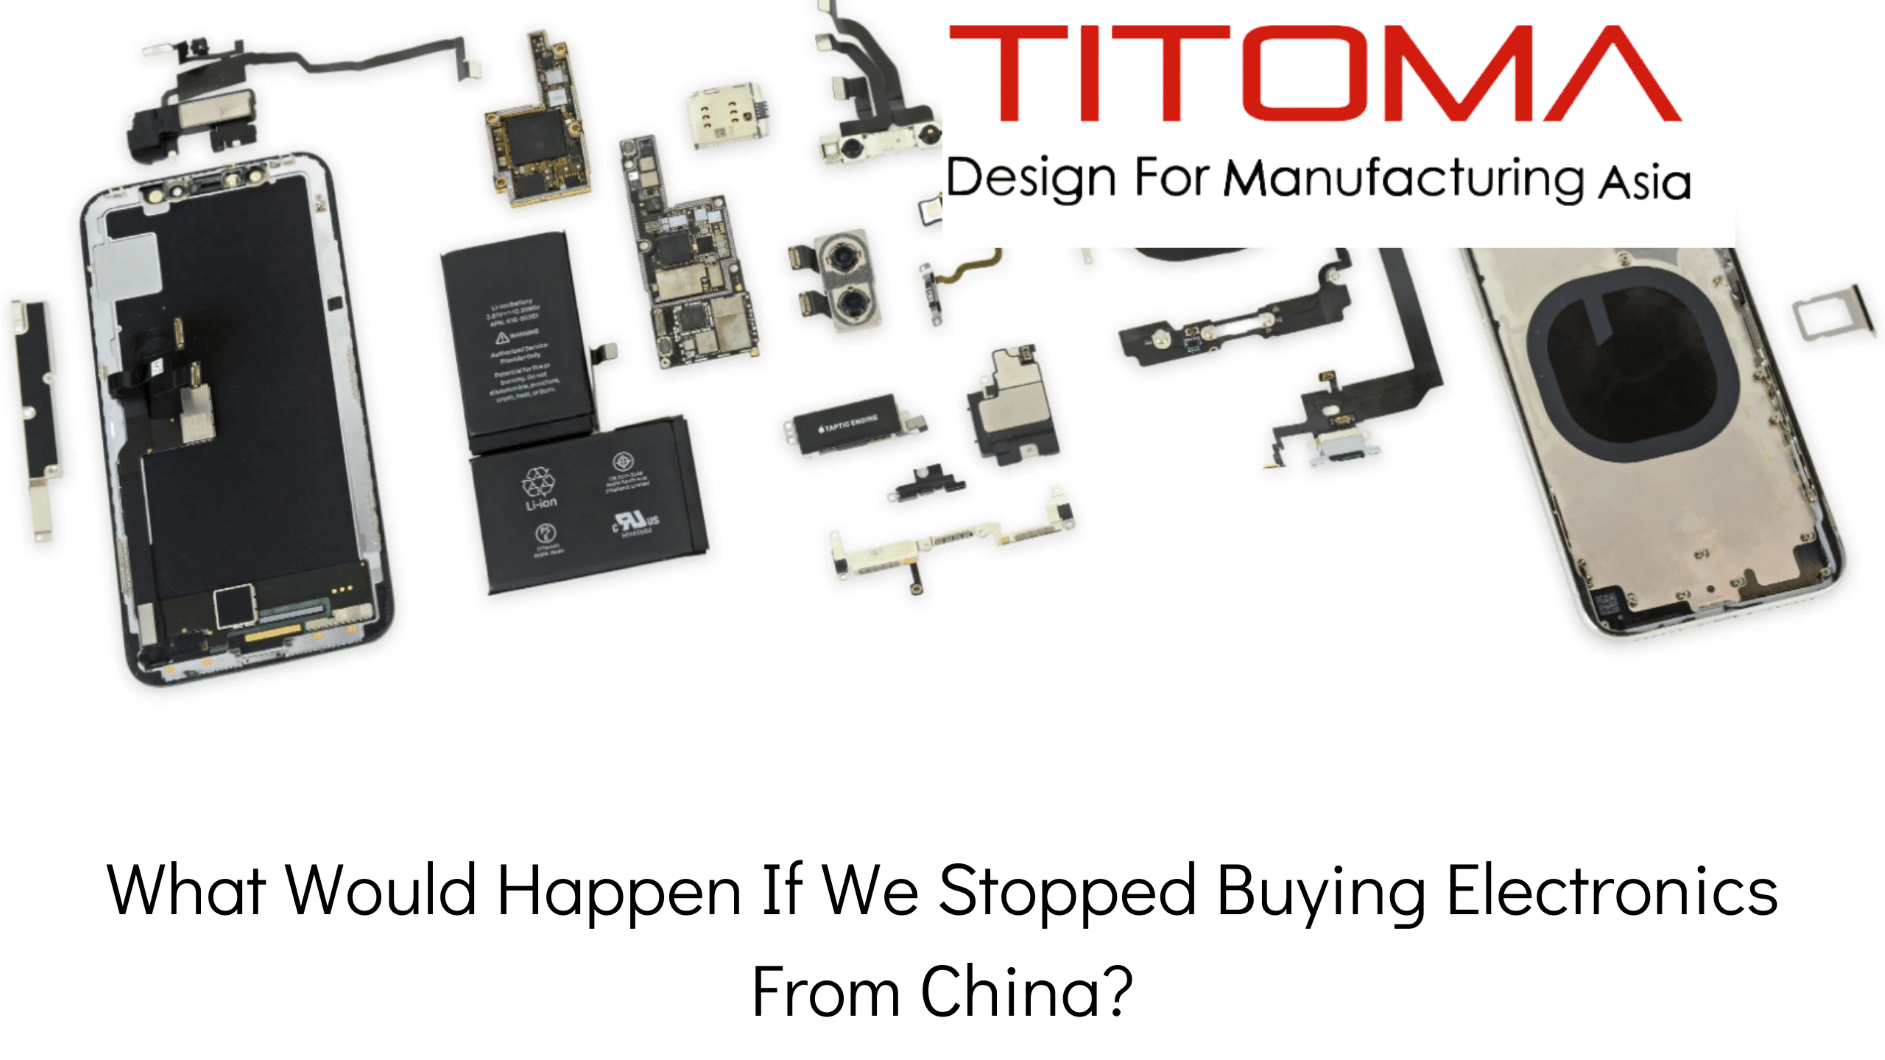 what would happen if we stopped buying electronics from china